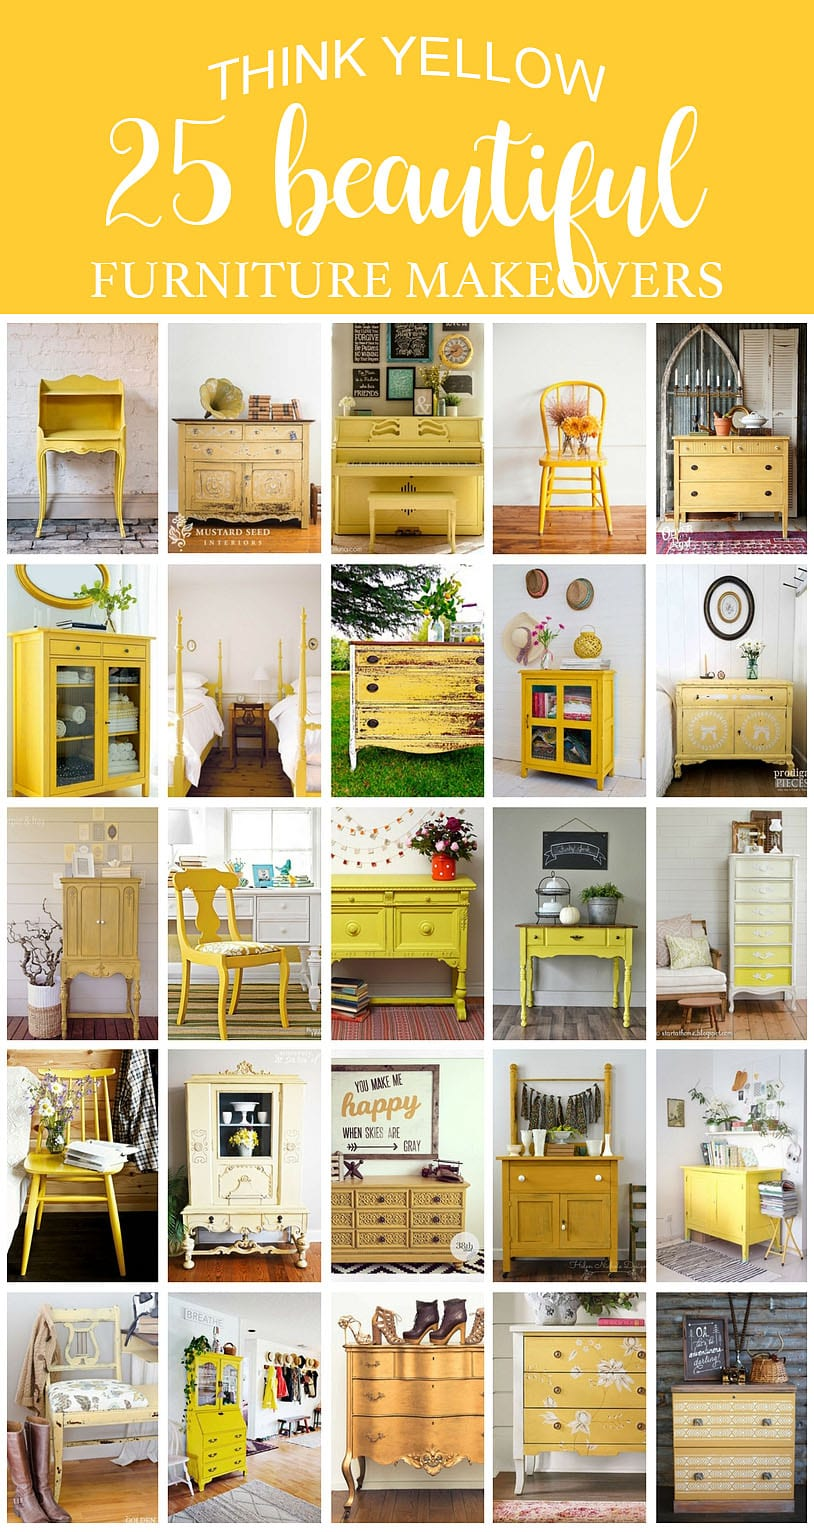 25 Beautiful Think Yellow Furniture Makeovers - SIBlog